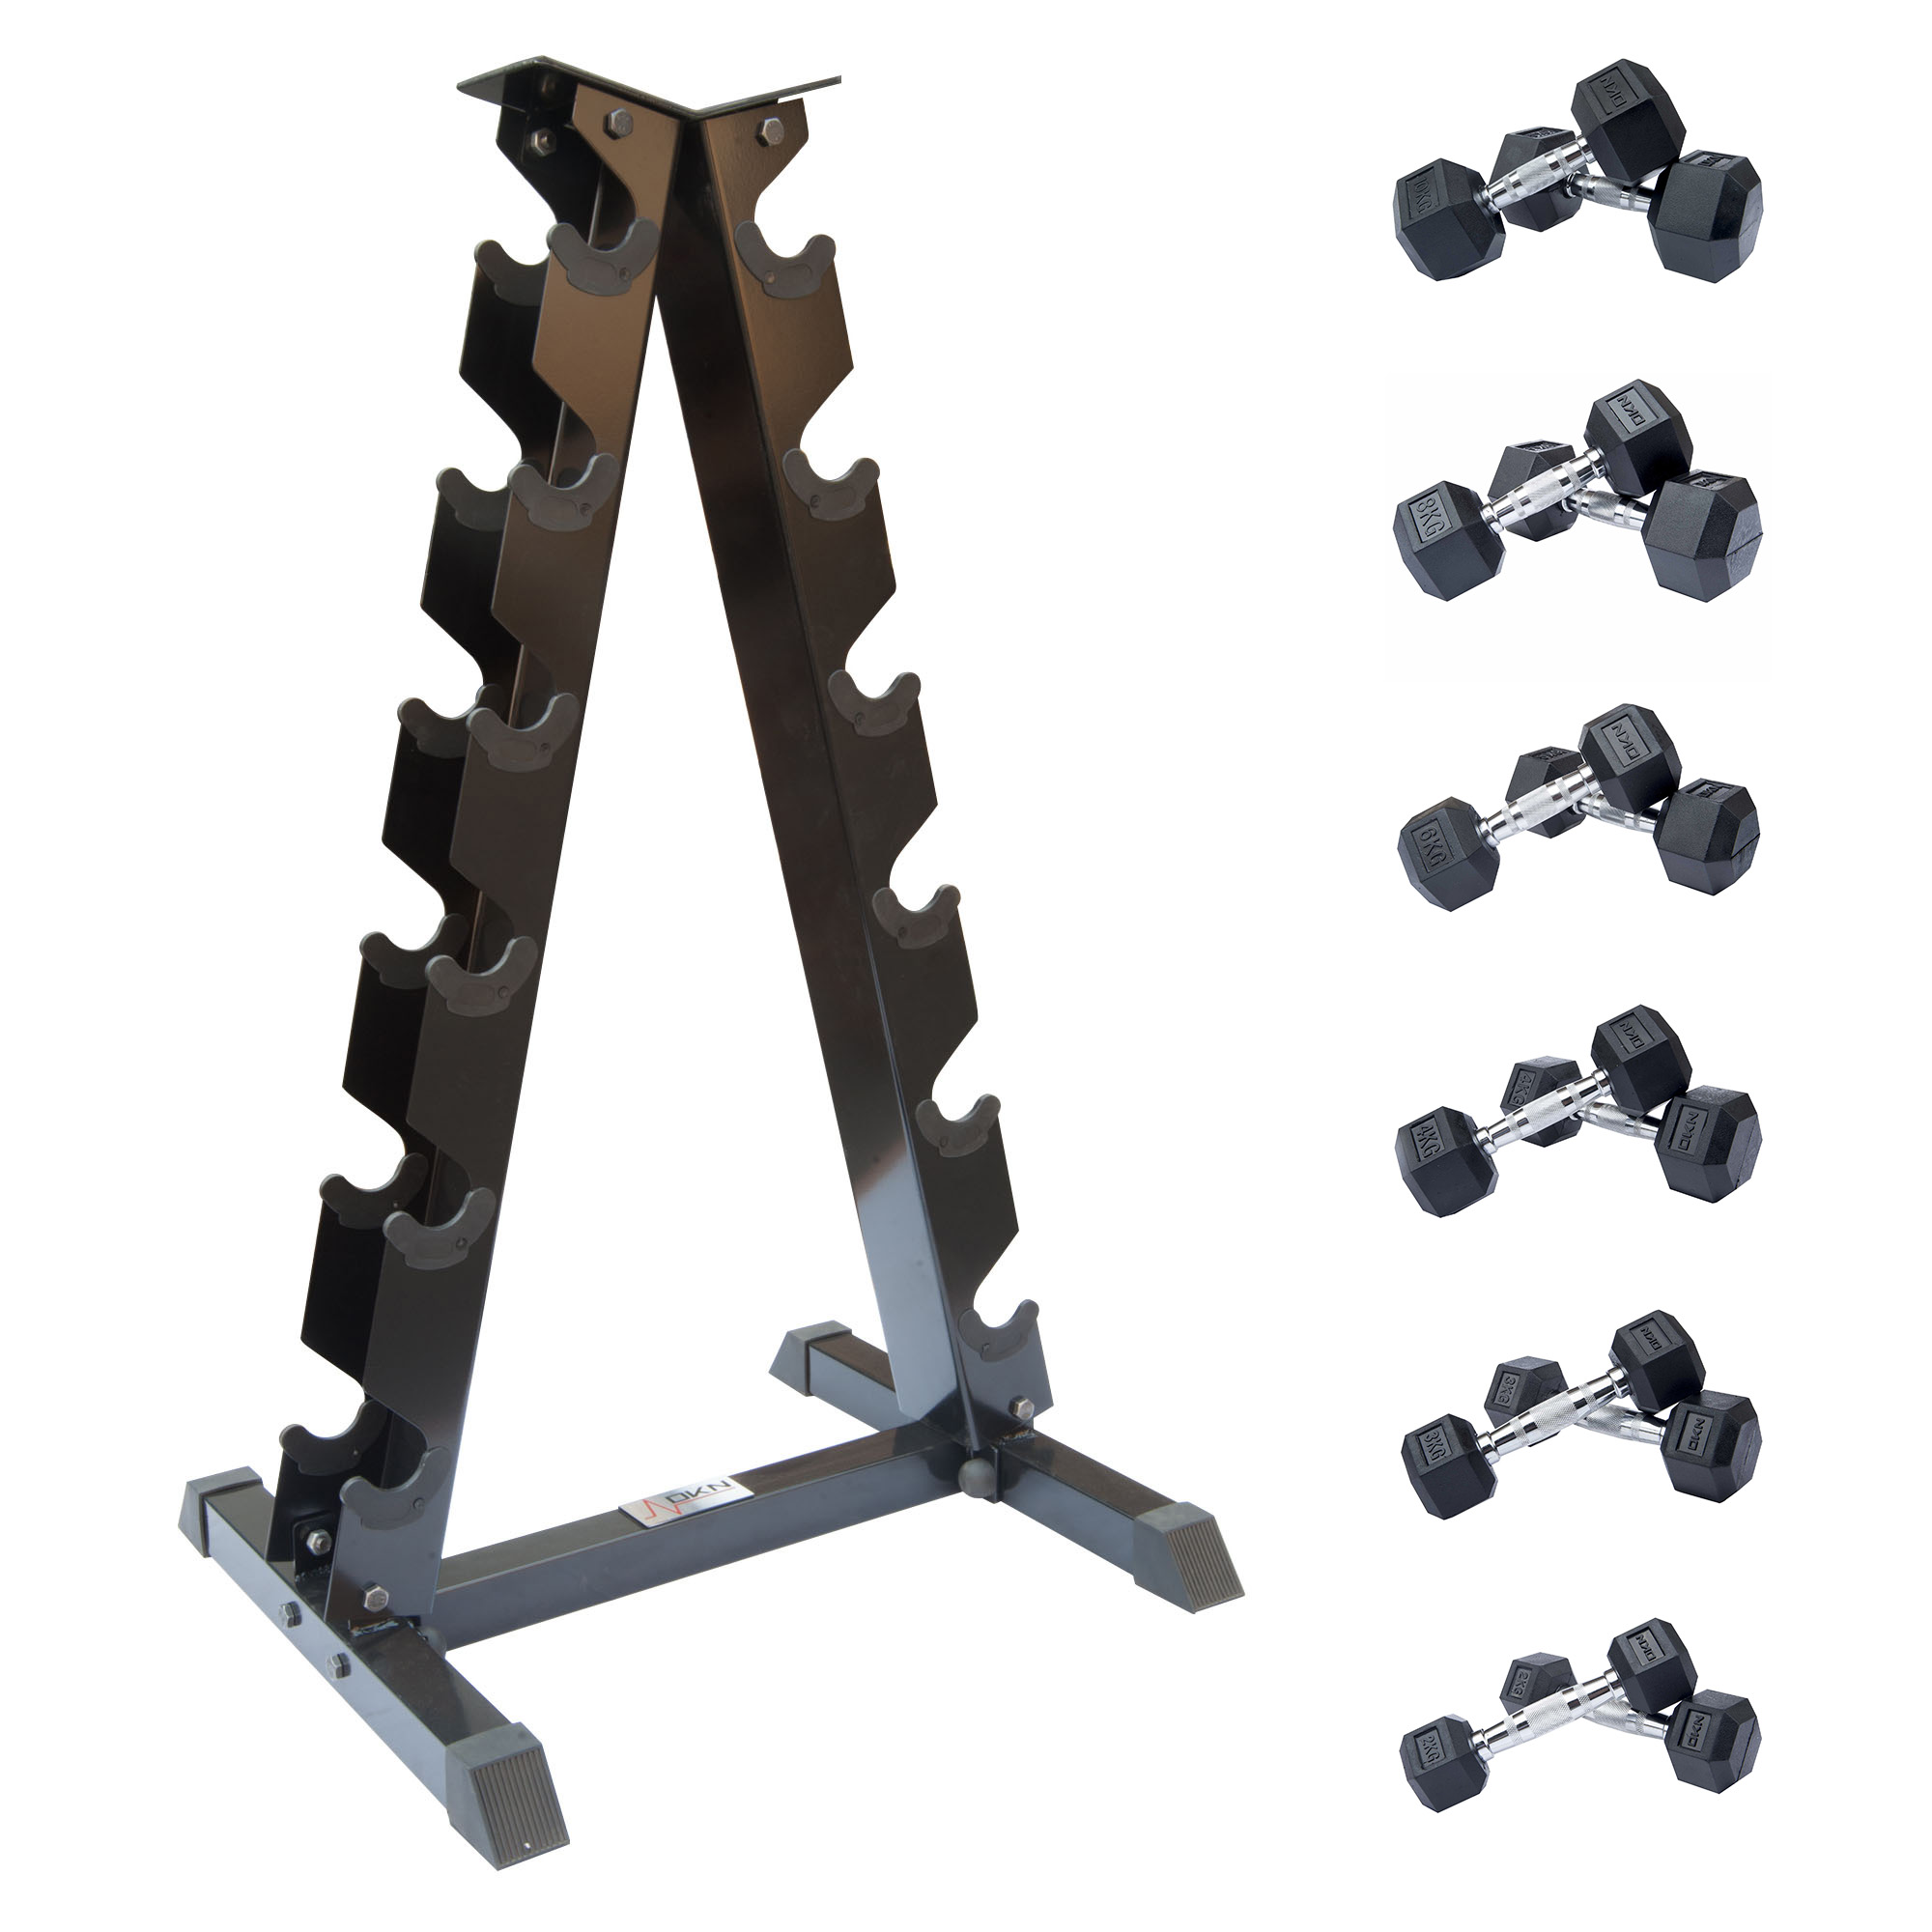 Dumbbell Set With Rack Shop For Cheap Weight Training